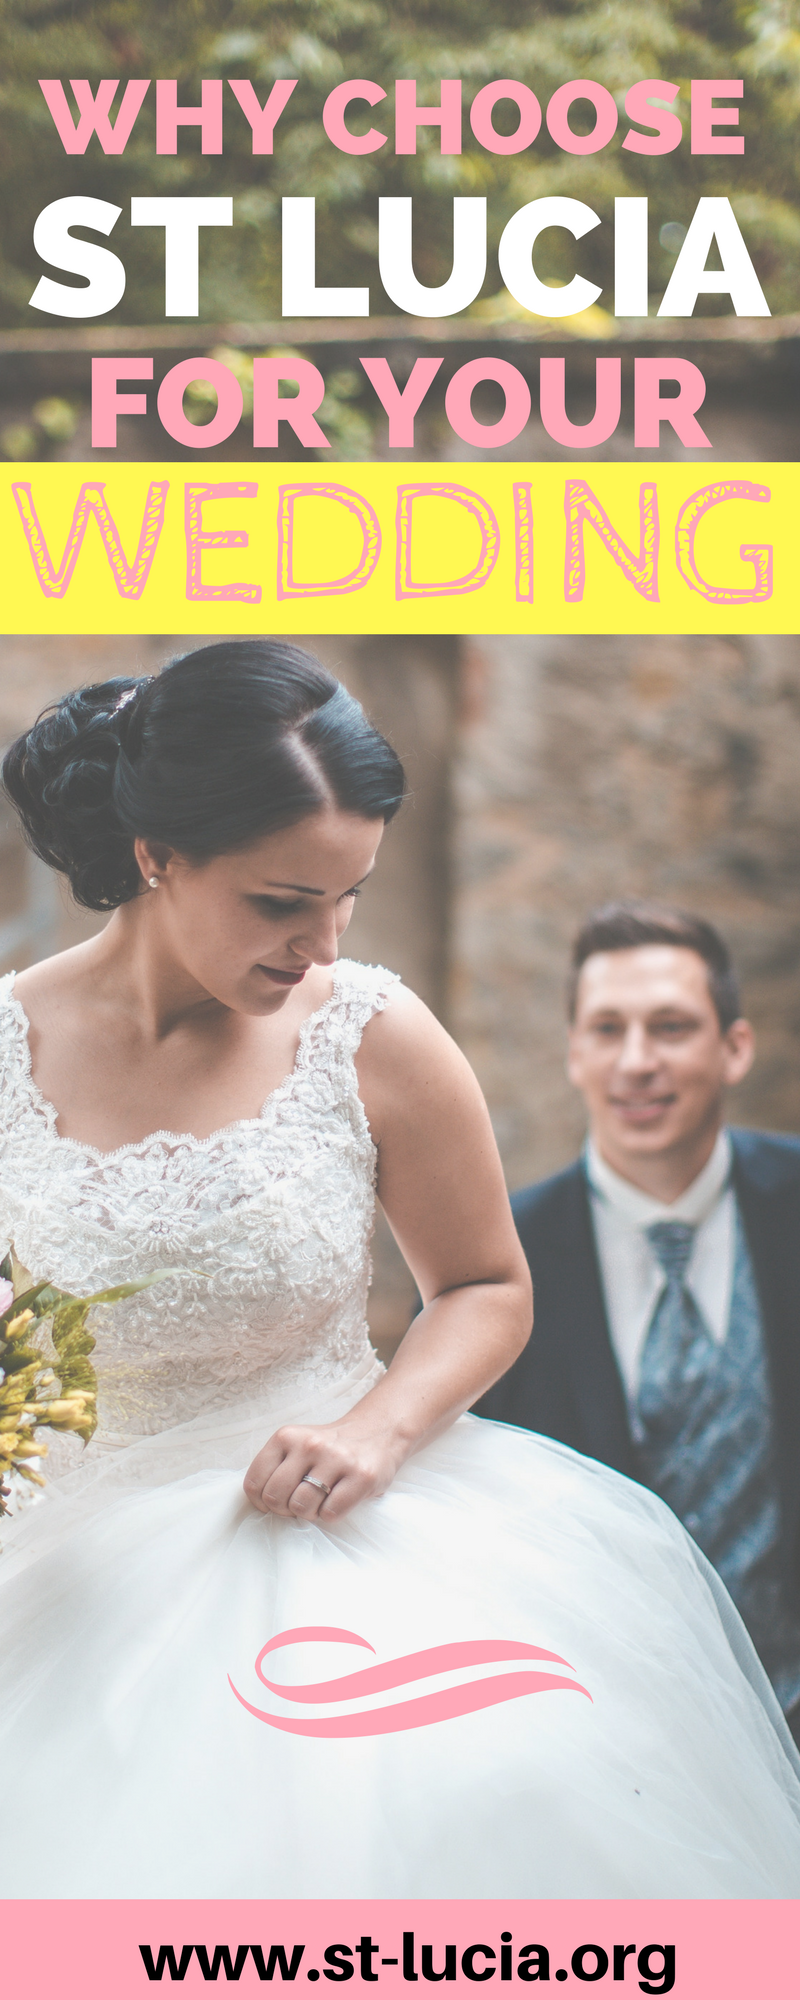 Why choose st lucia for your Destination wedding